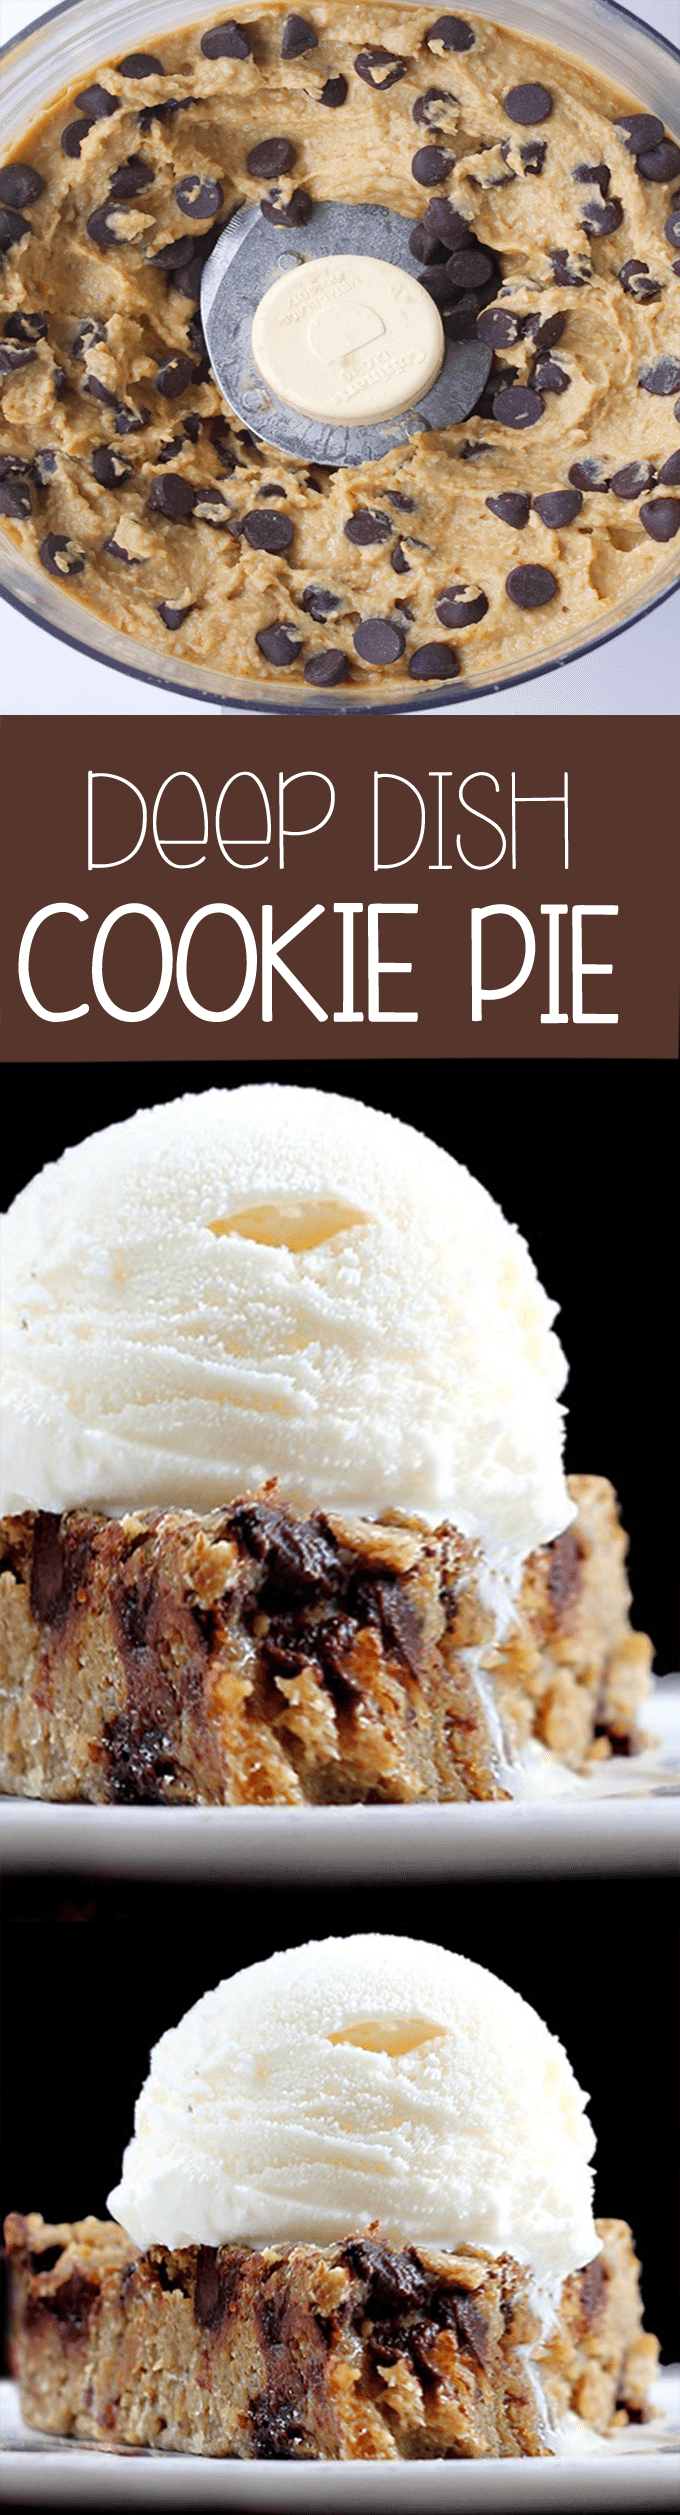 Deep Dish Cookie Pie – One of our favorite recipes! It tastes like eating a giant homemade chocolate chip cookie!… Recipe, as featured on ABC News: @choccoveredkt https://chocolatecoveredkatie.com